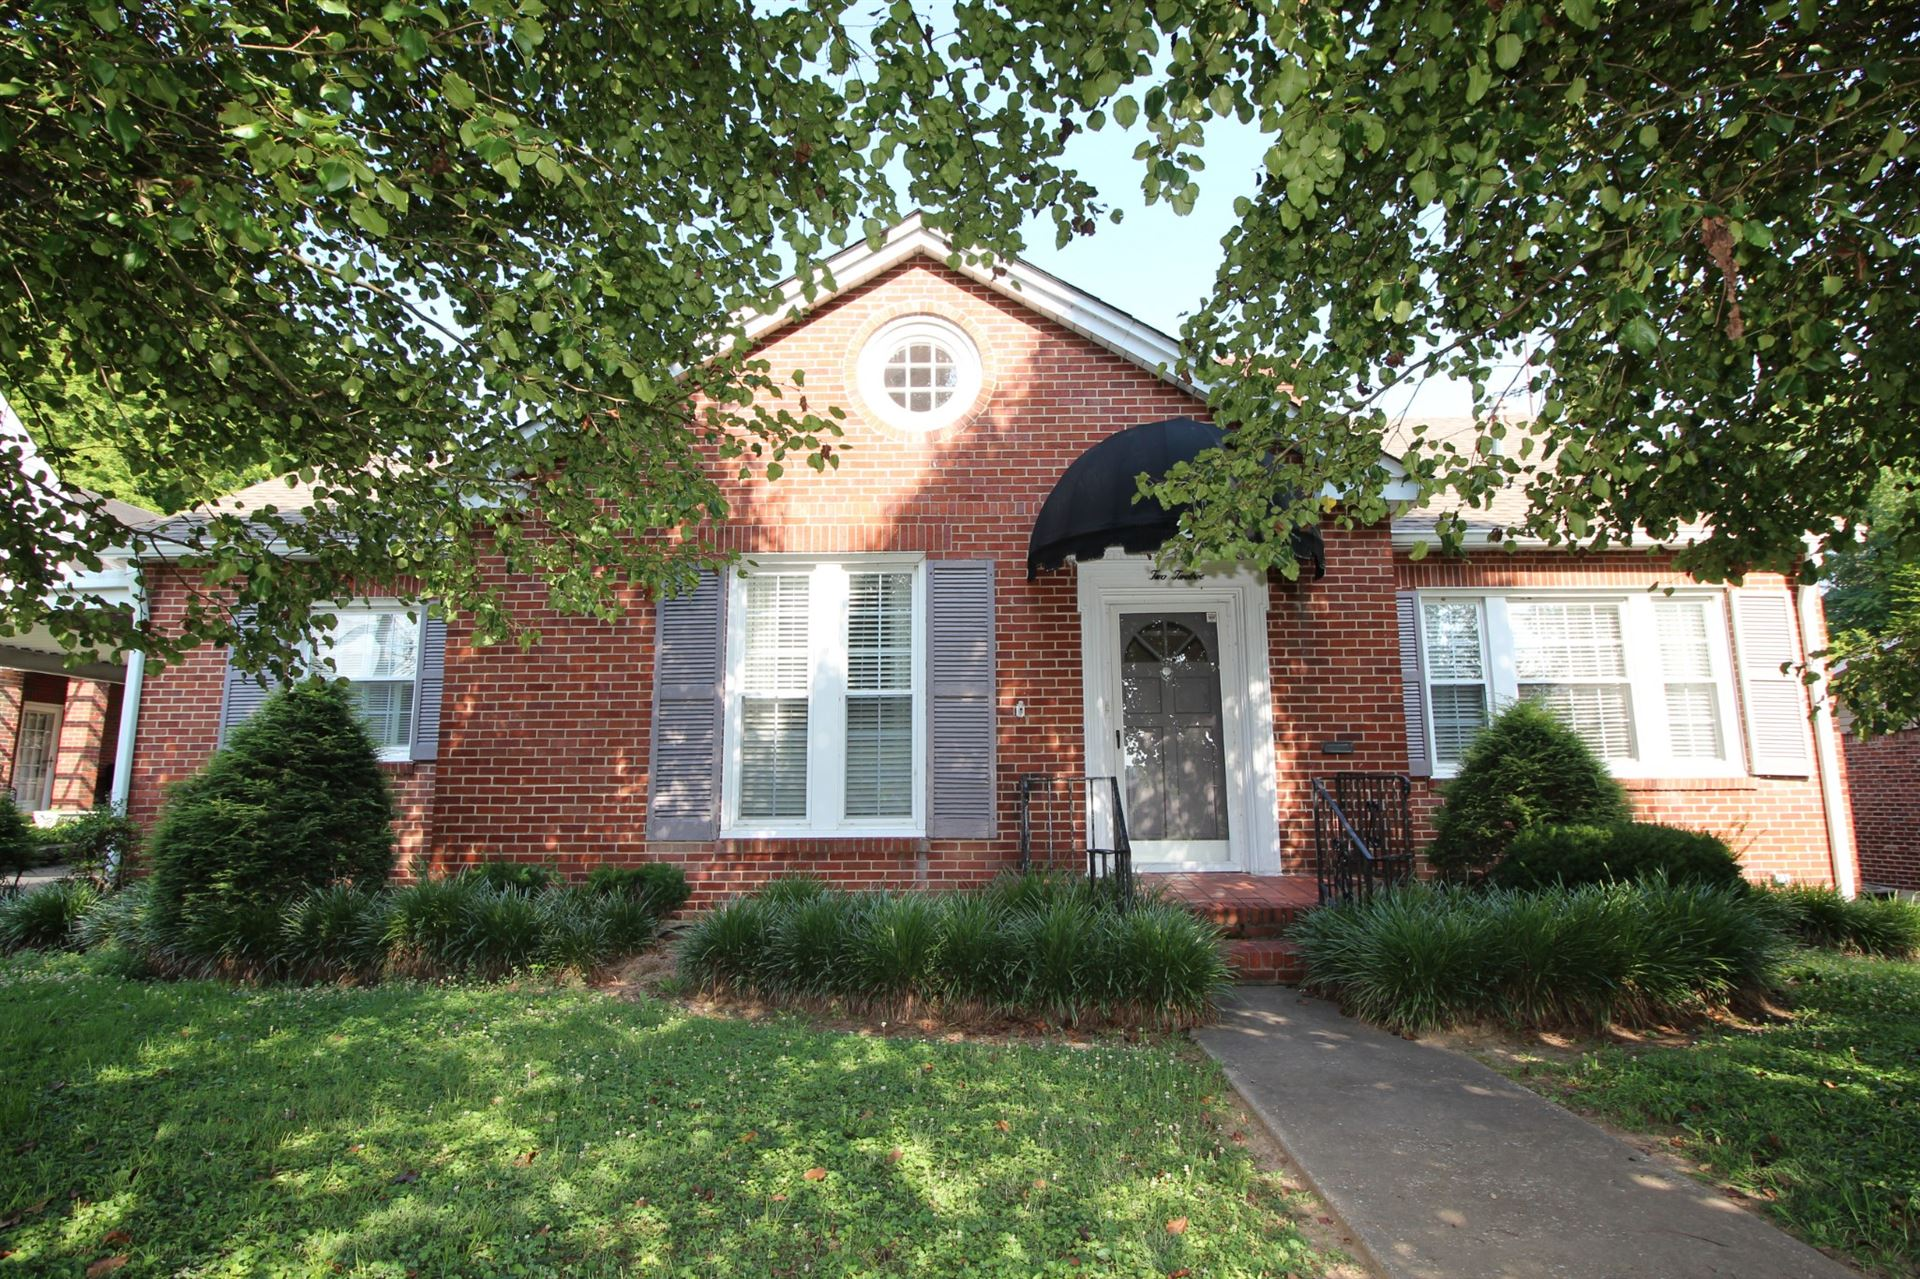 212 River St, Hartsville, TN 37074 - MLS#: 2210850